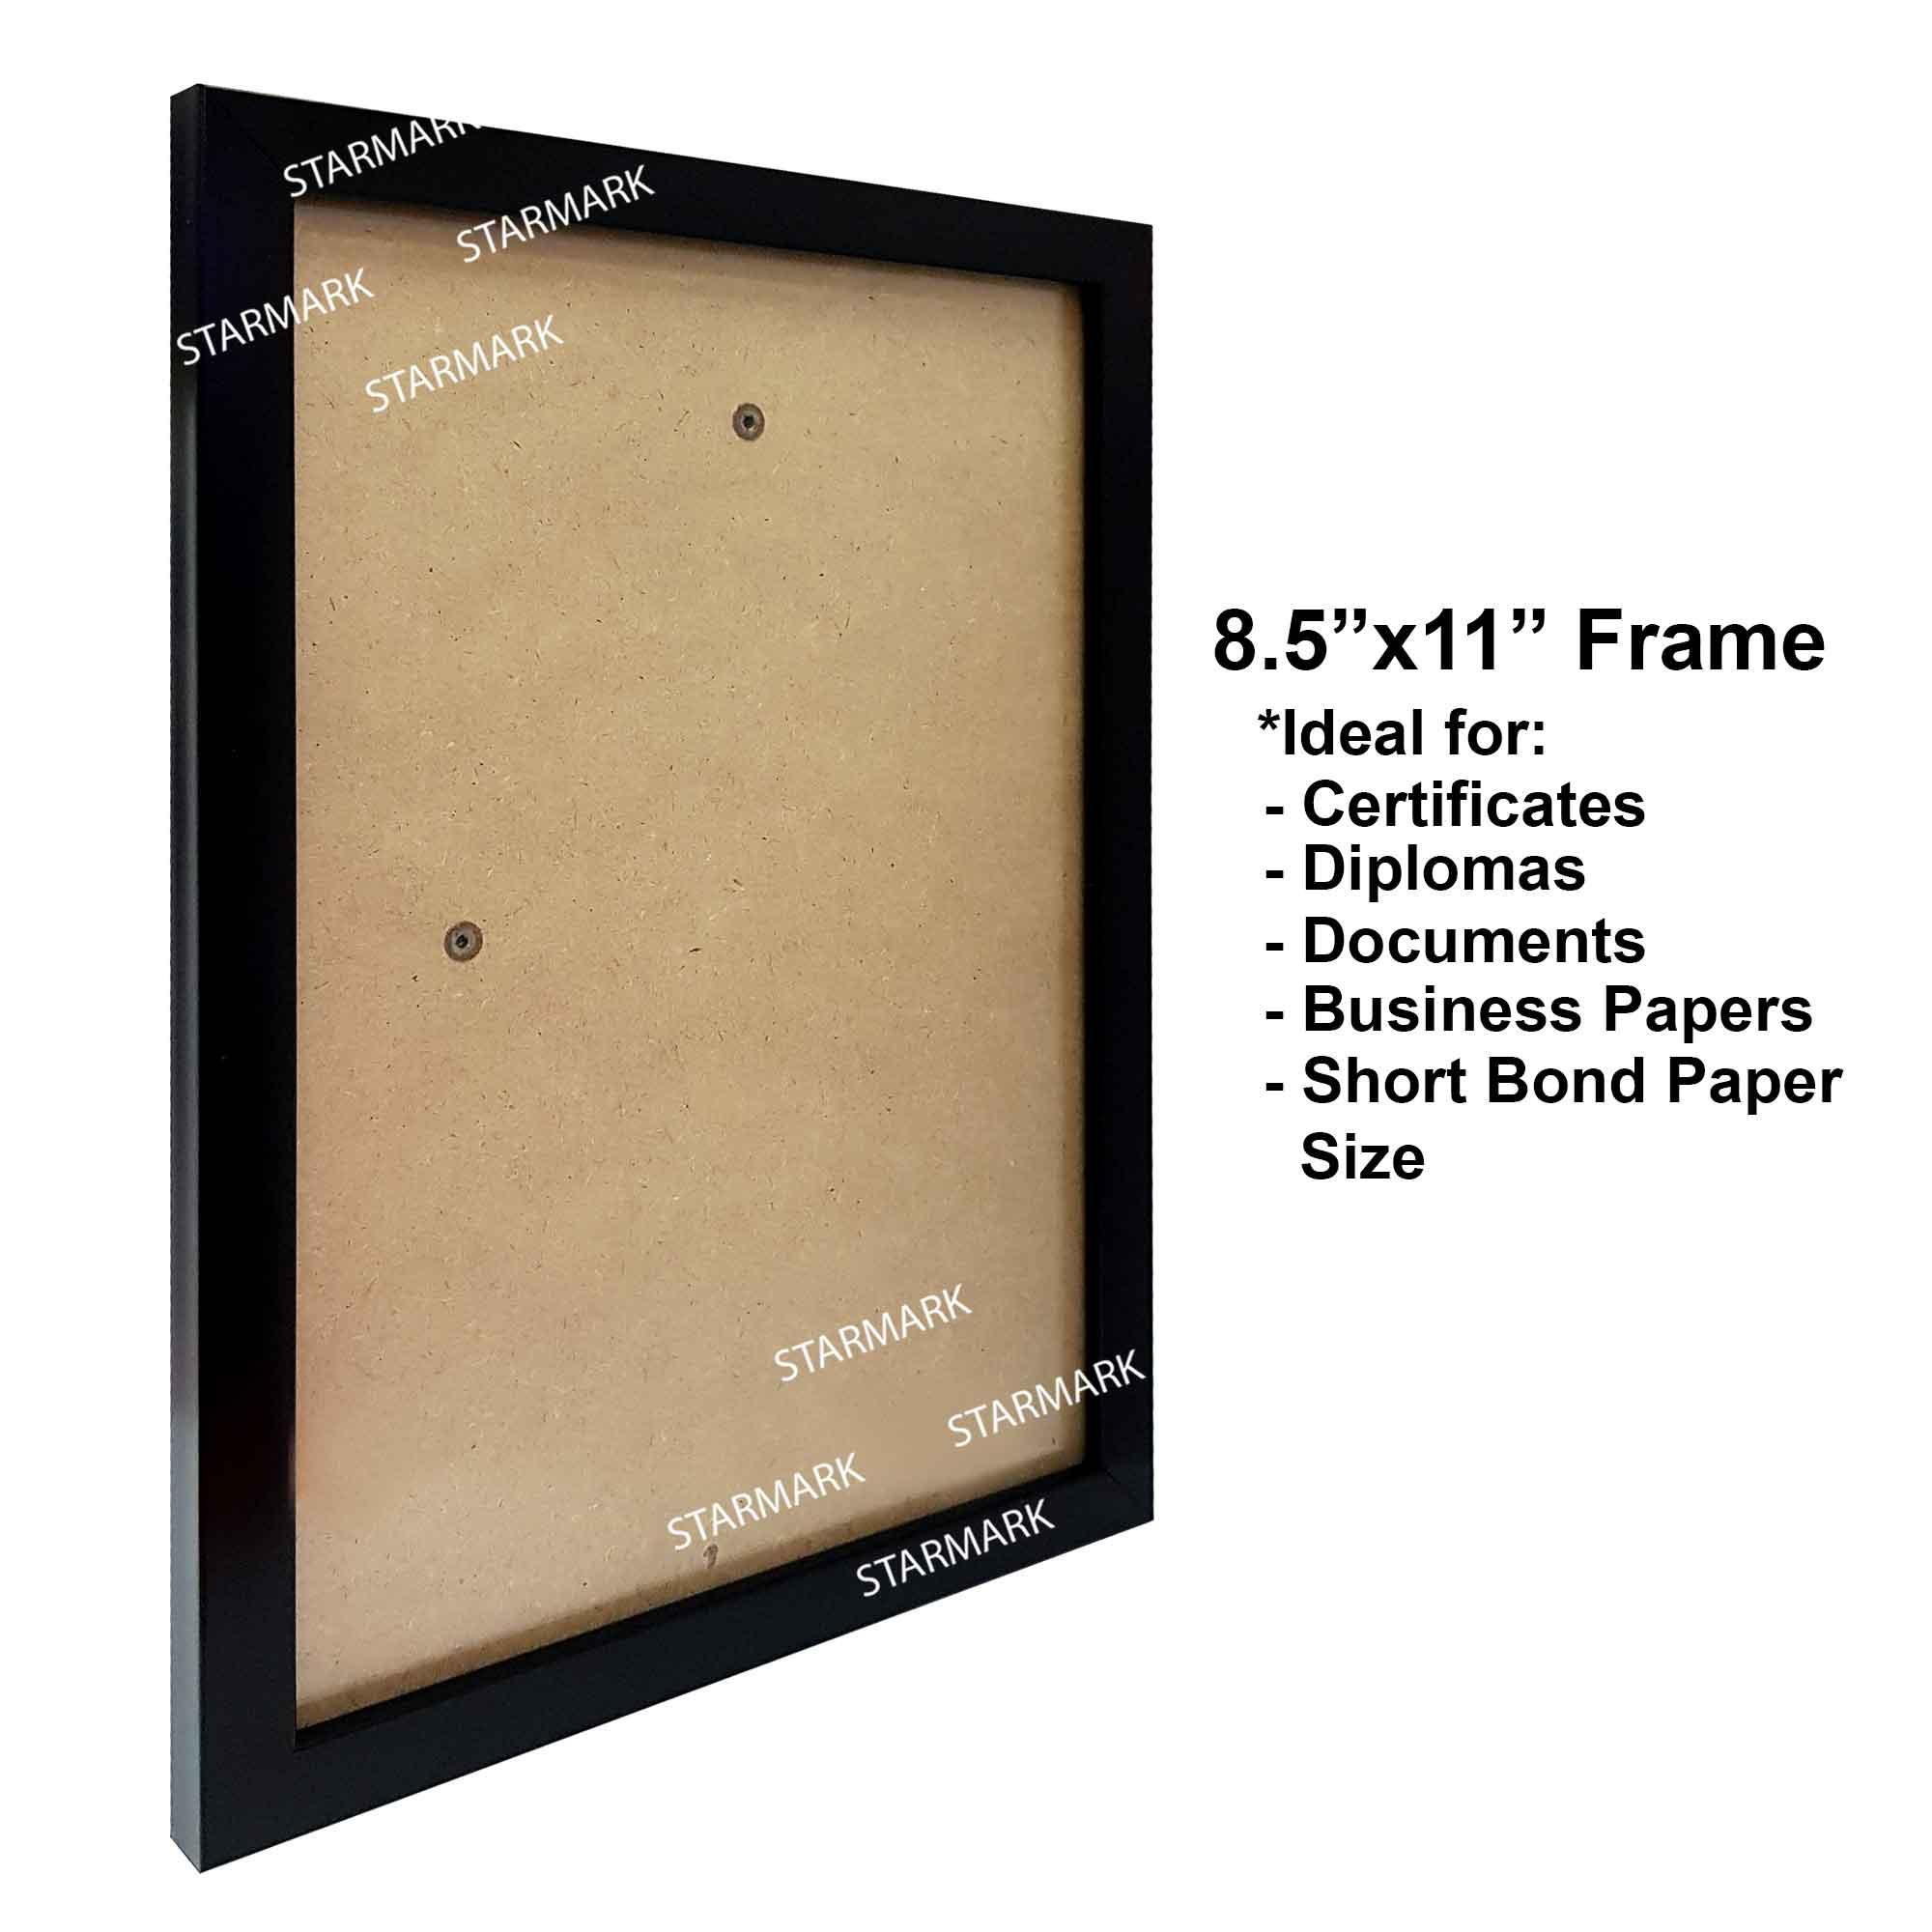 What size is a4 picture frame in inches